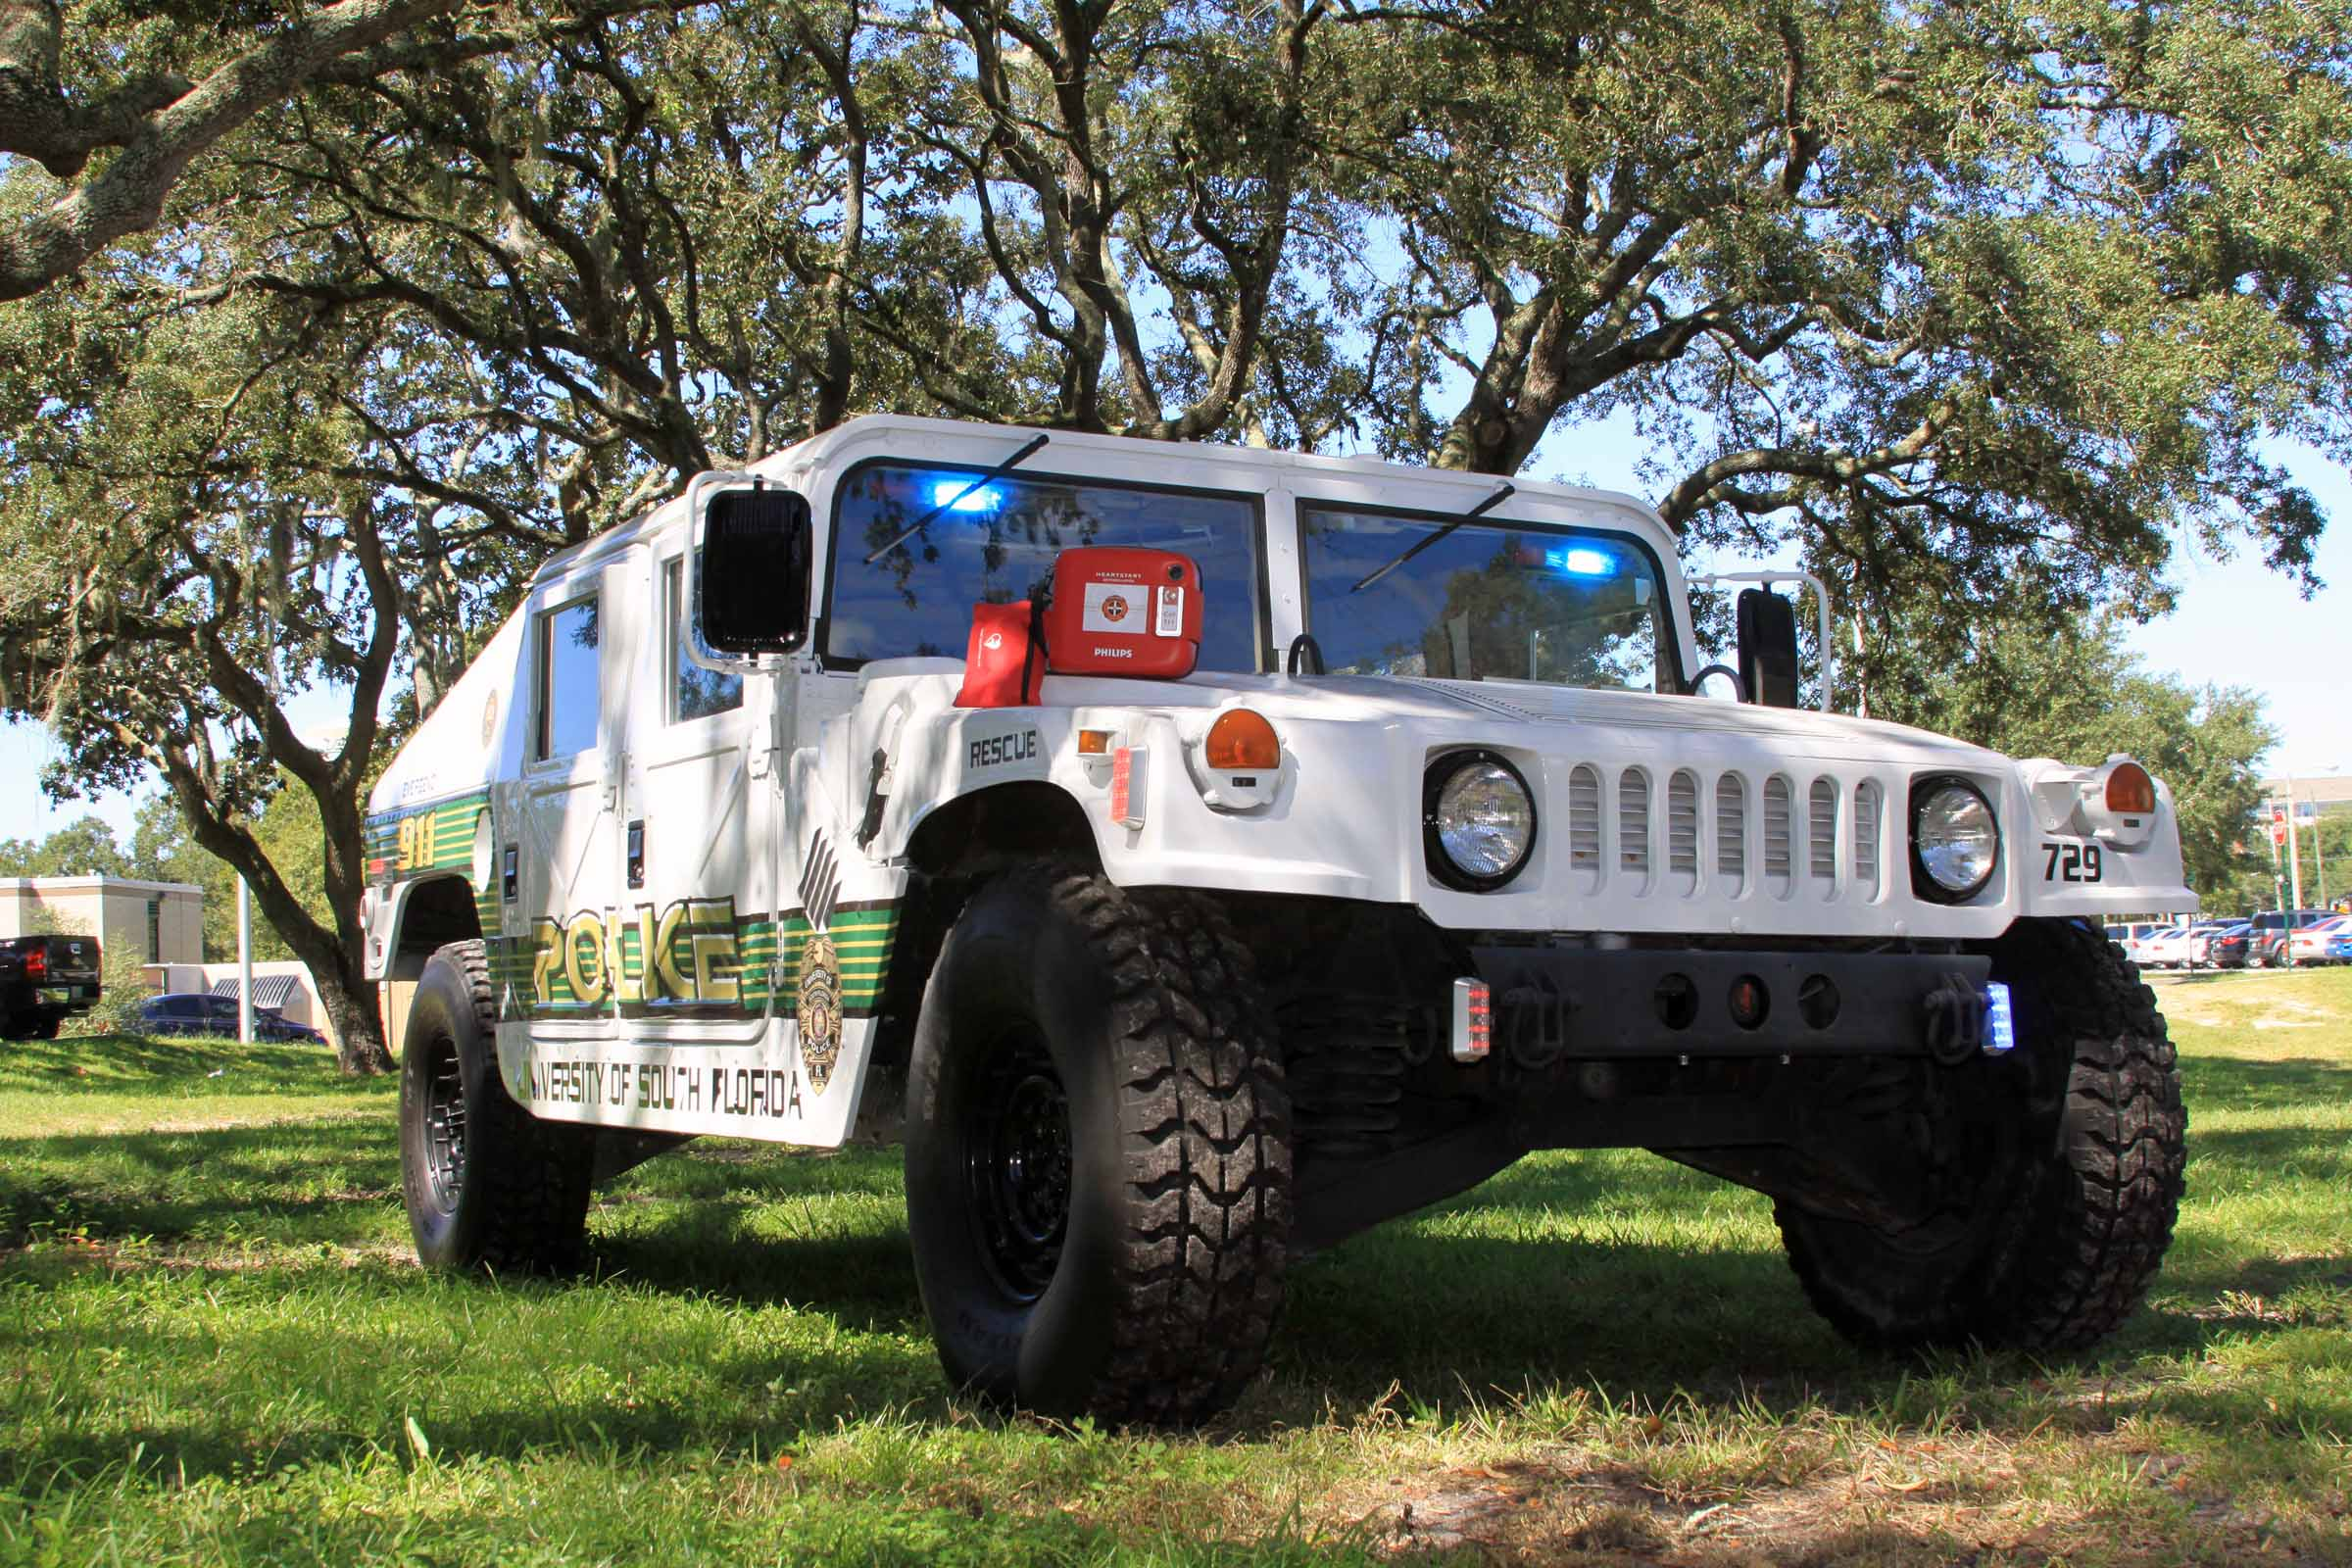 usf-hummer-with-phillips-frx.jpg